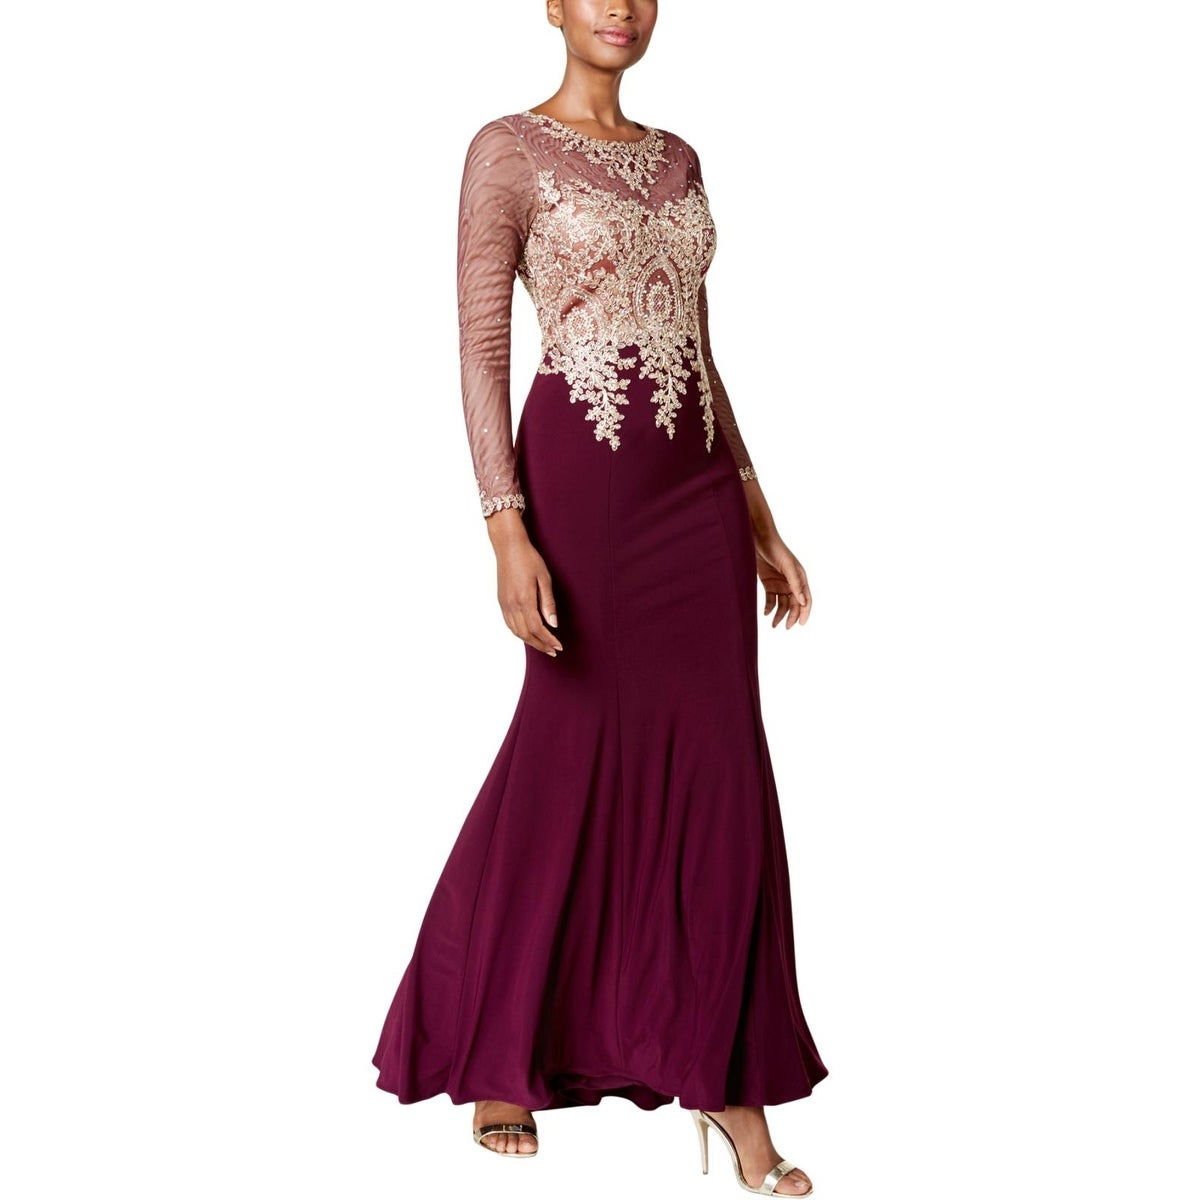 83ff8a5b Xscape Dresses   Find Great Women's Clothing Deals Shopping at Overstock